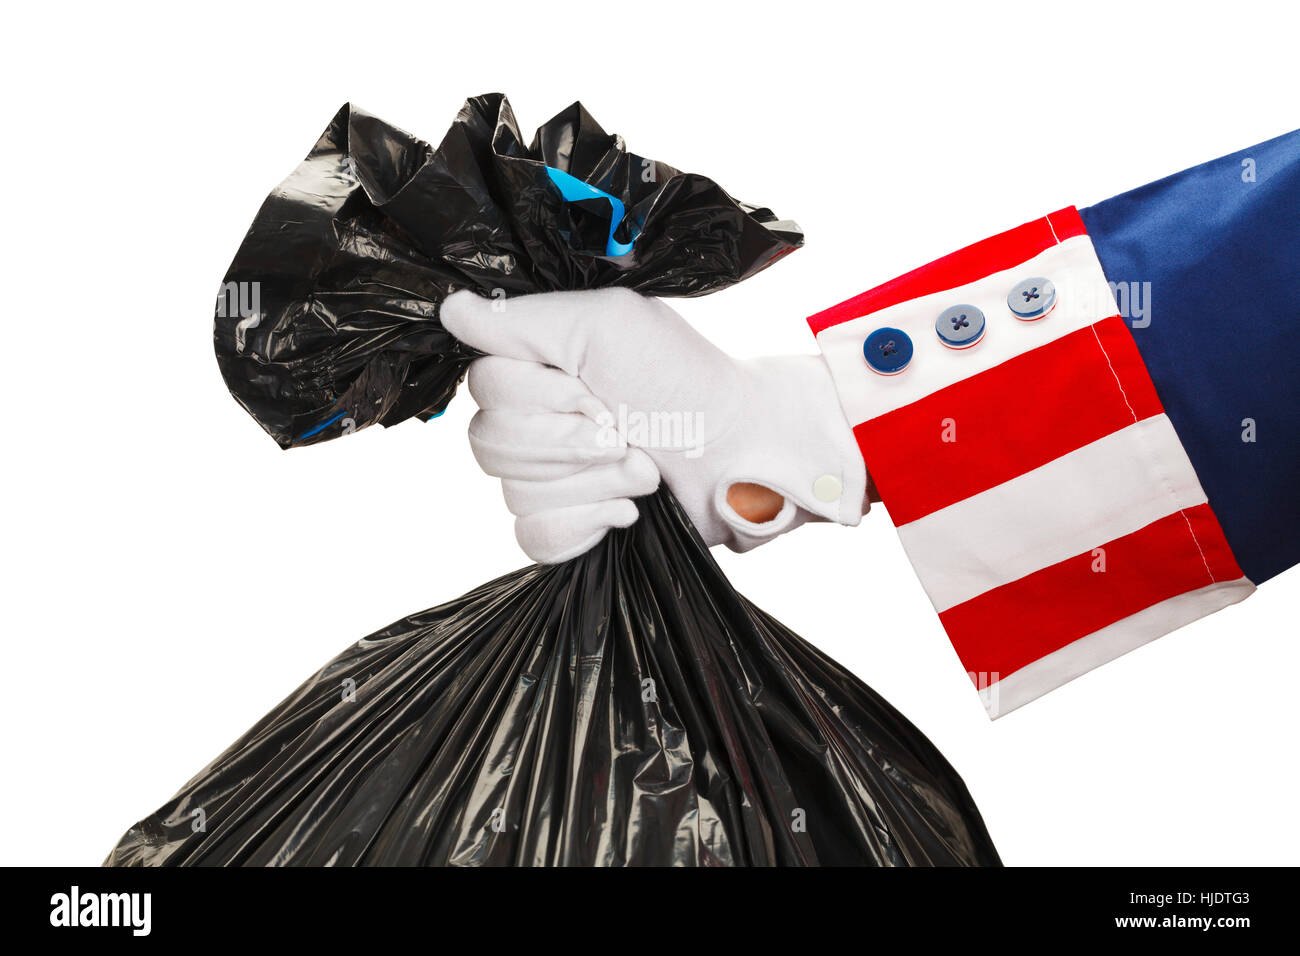 President Holding a Bag of Trash Isolated on White Background. - Stock Image